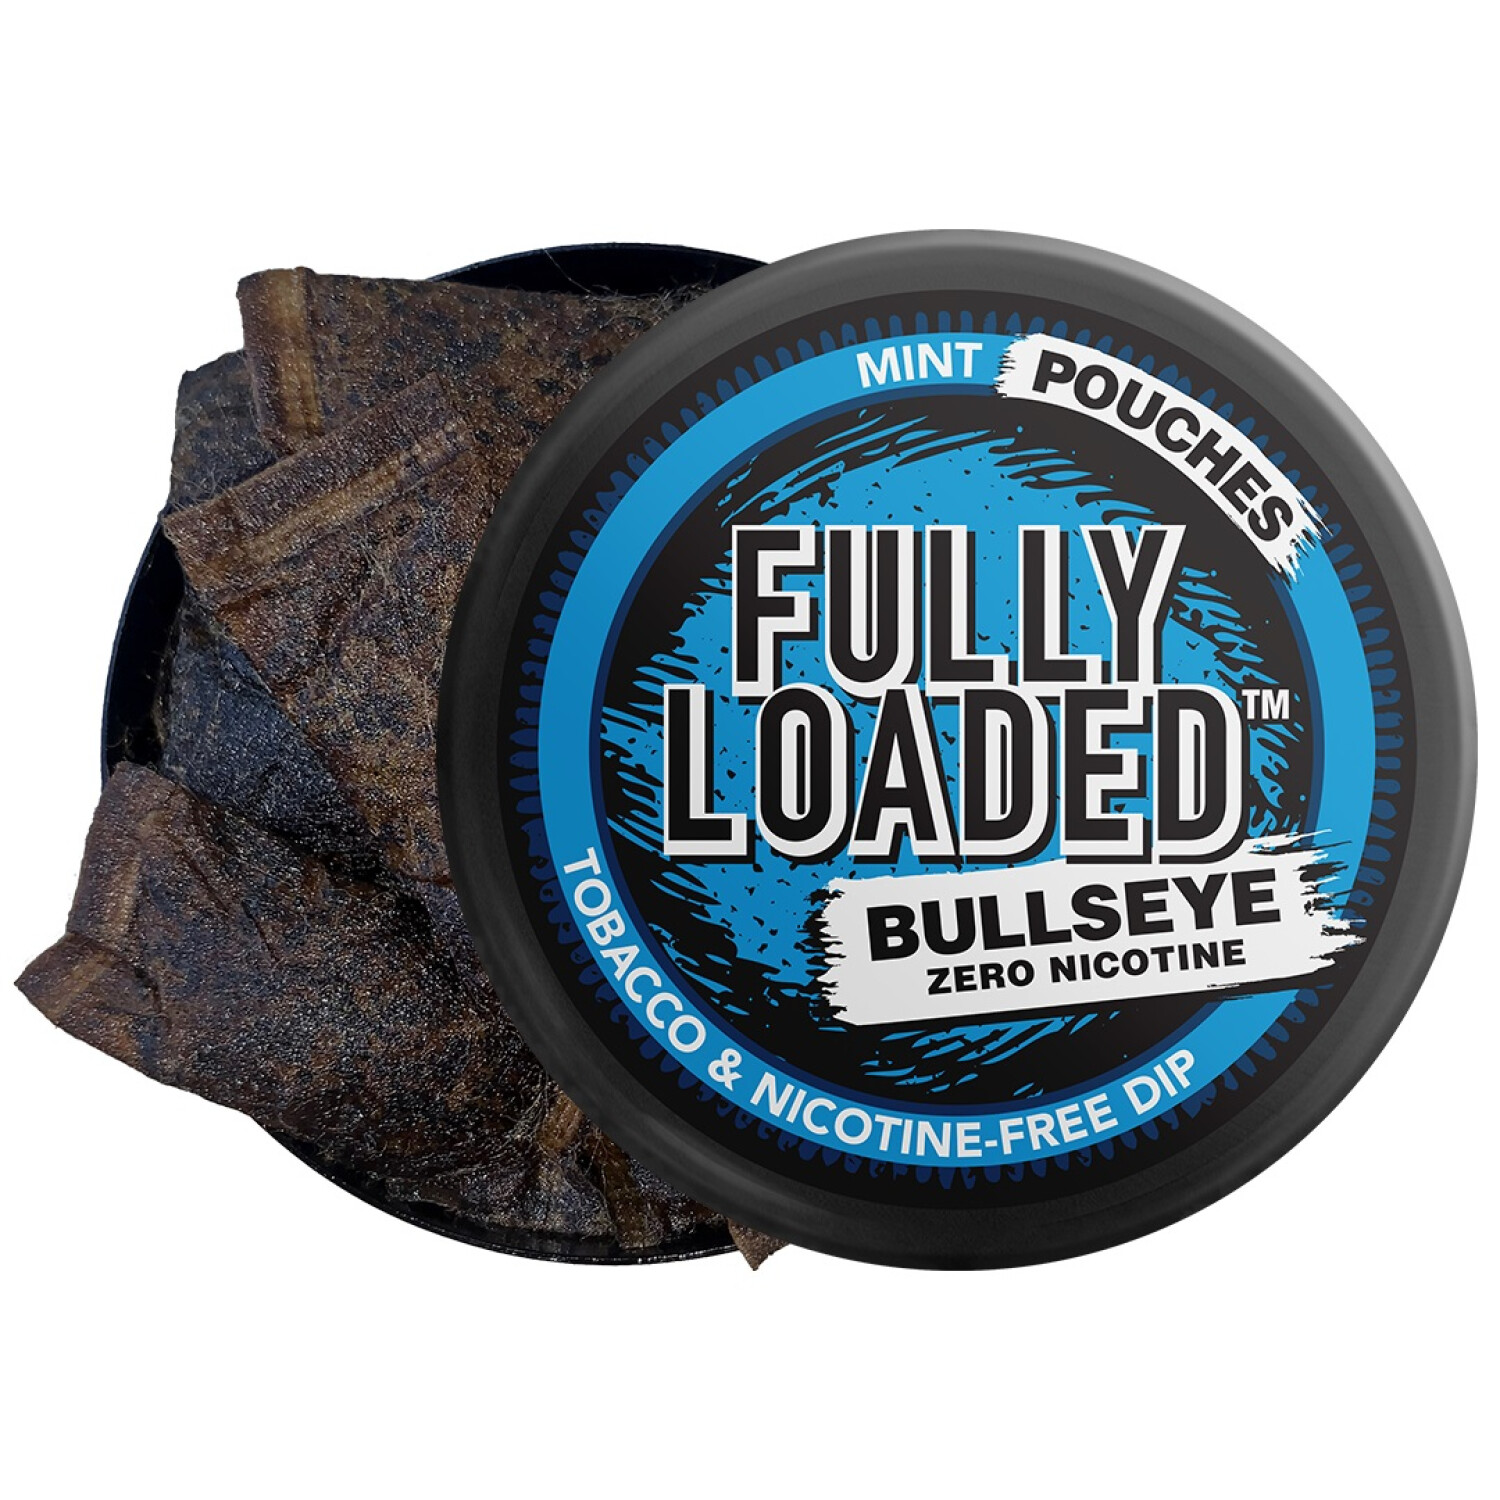 Fully Loaded Chew Tobacco and Nicotine Free Mint Bullseye Pouches Bold Flavor, Chewing Alternative